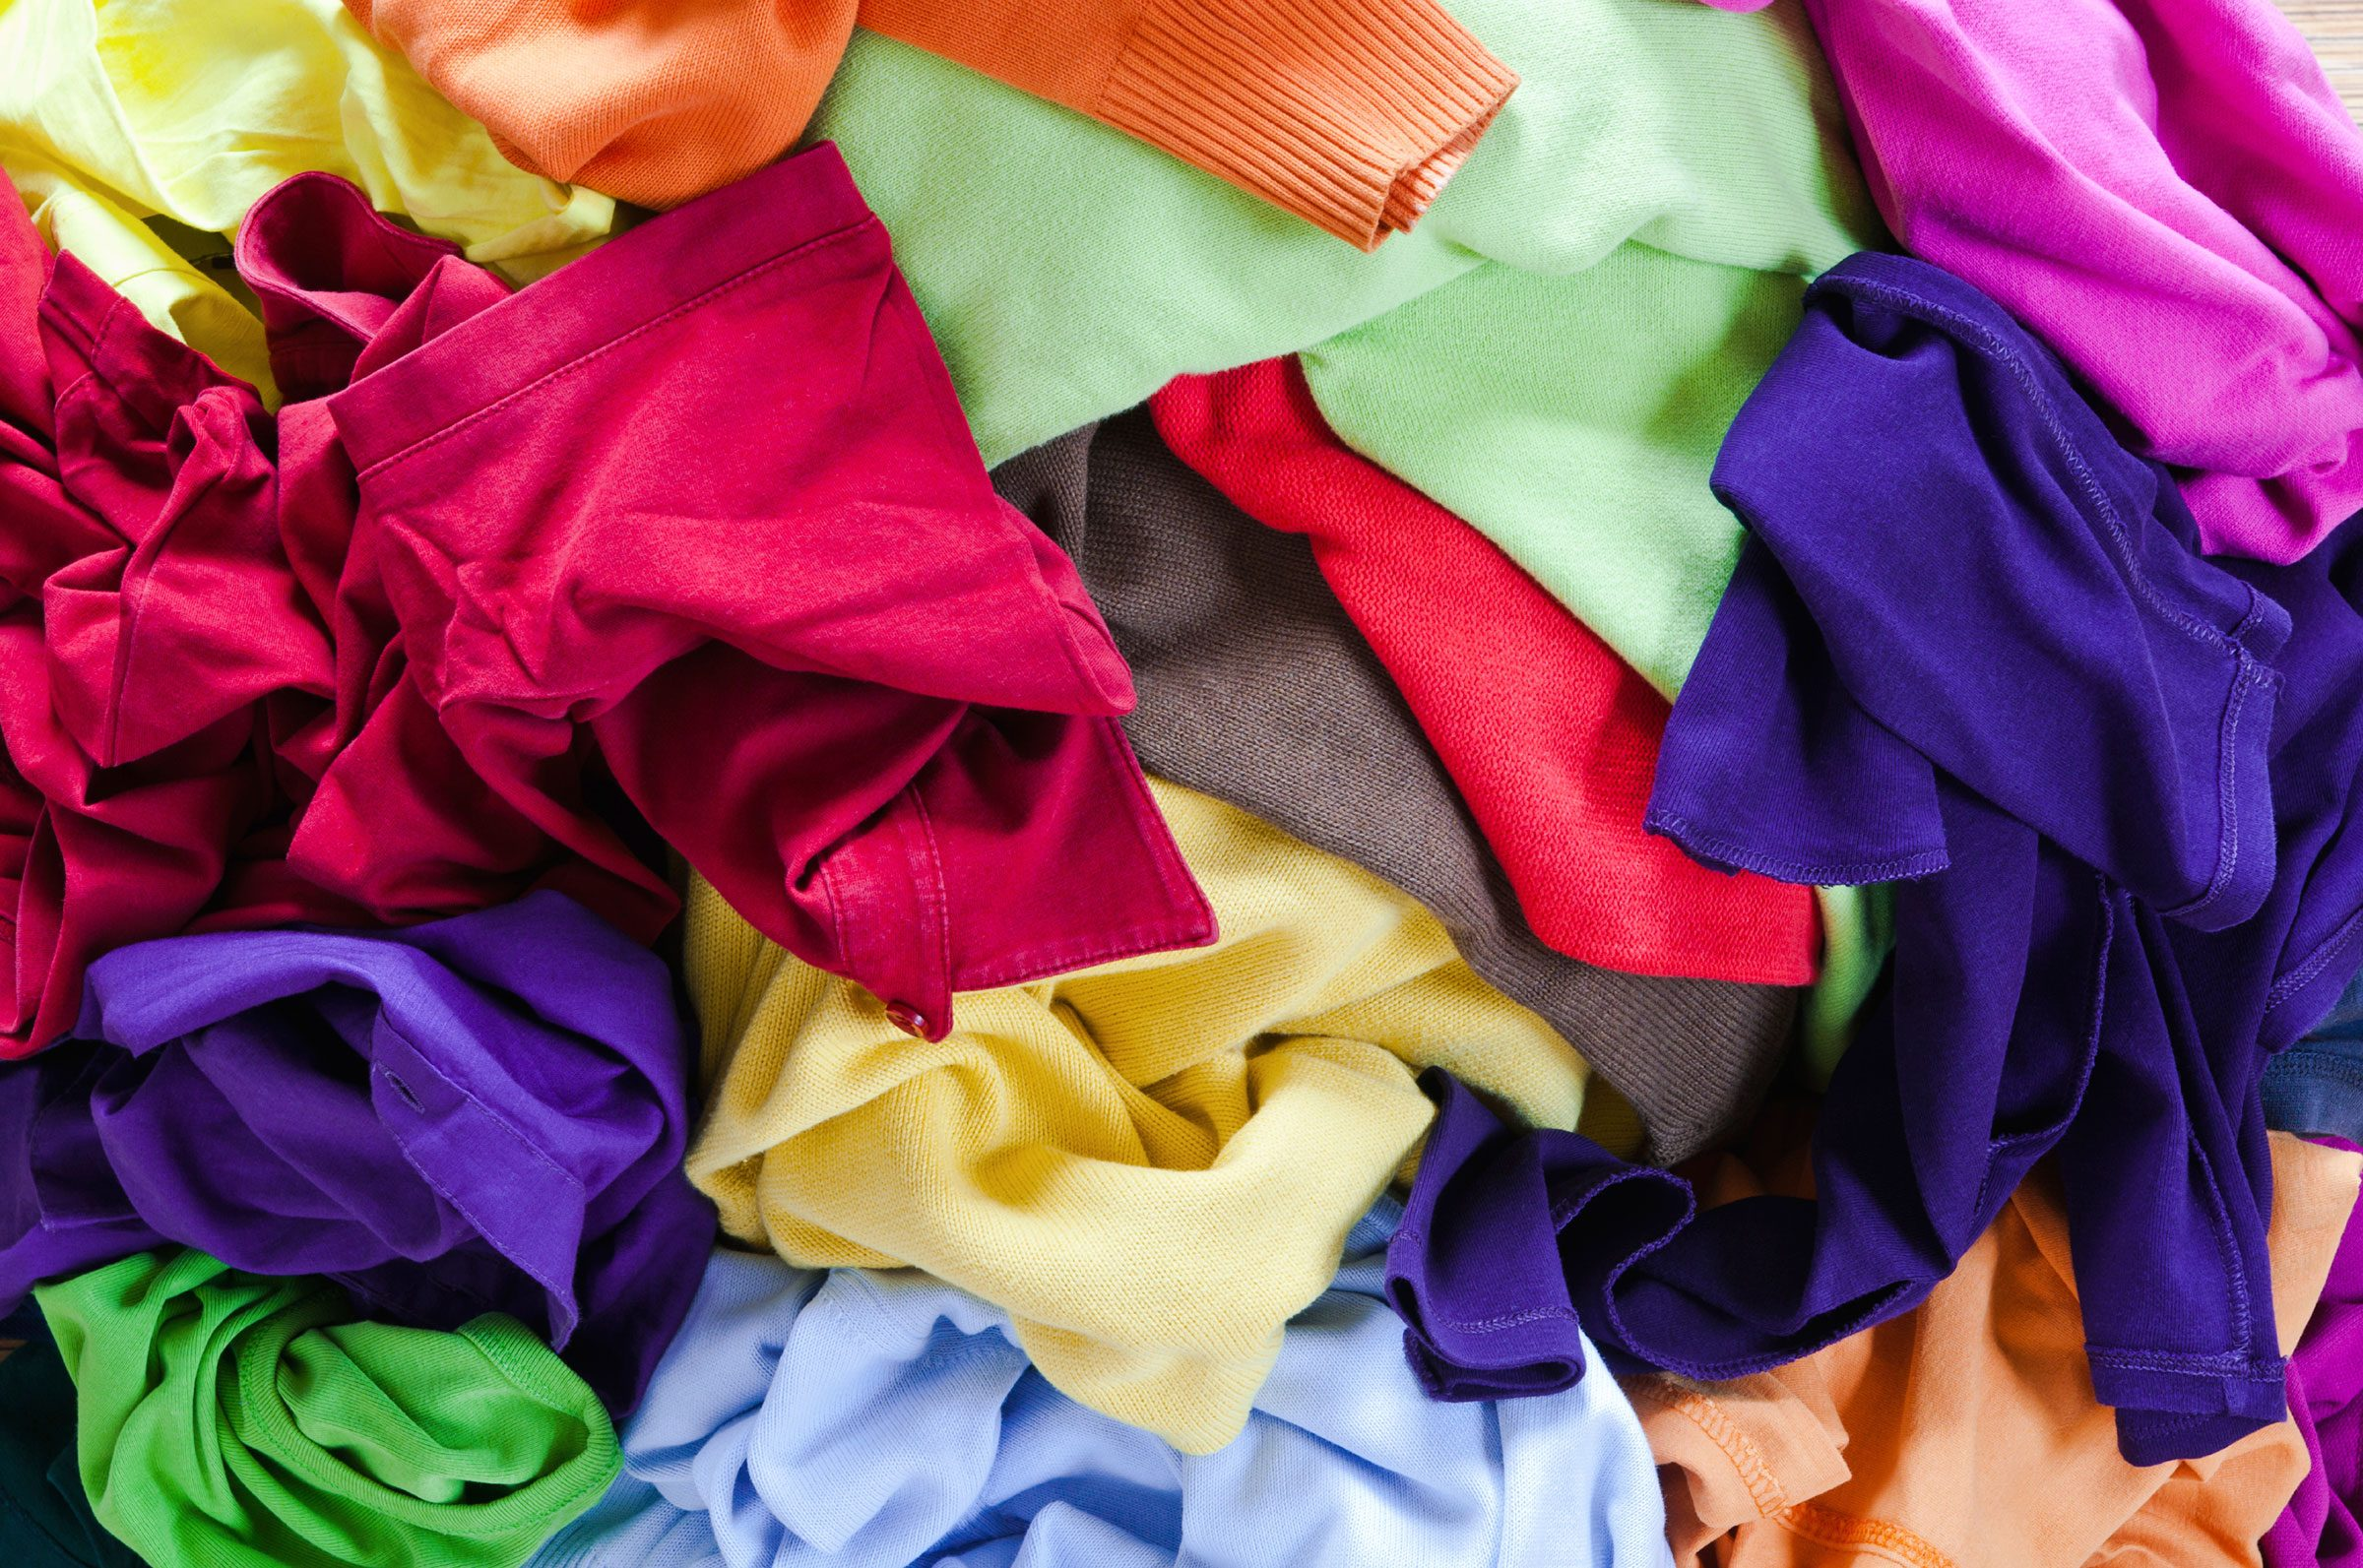 Organizing Shirts In Closet Organize Your Closet 9 Rules For What To Keep Reader S